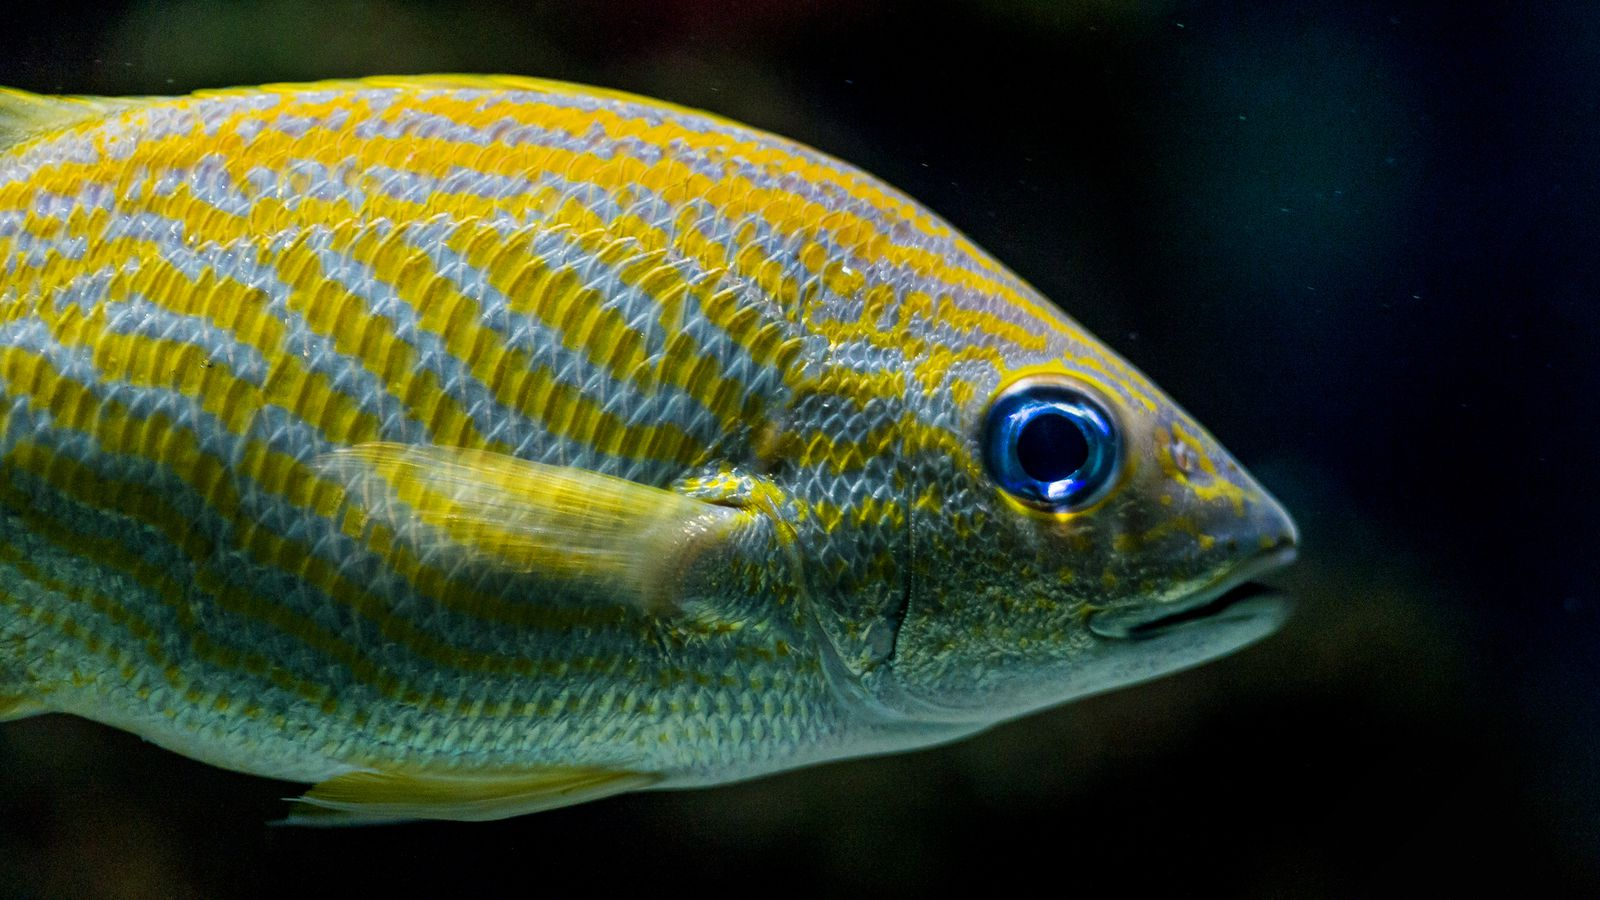 Are fish far more intelligent than we realize vox for Are fish smart